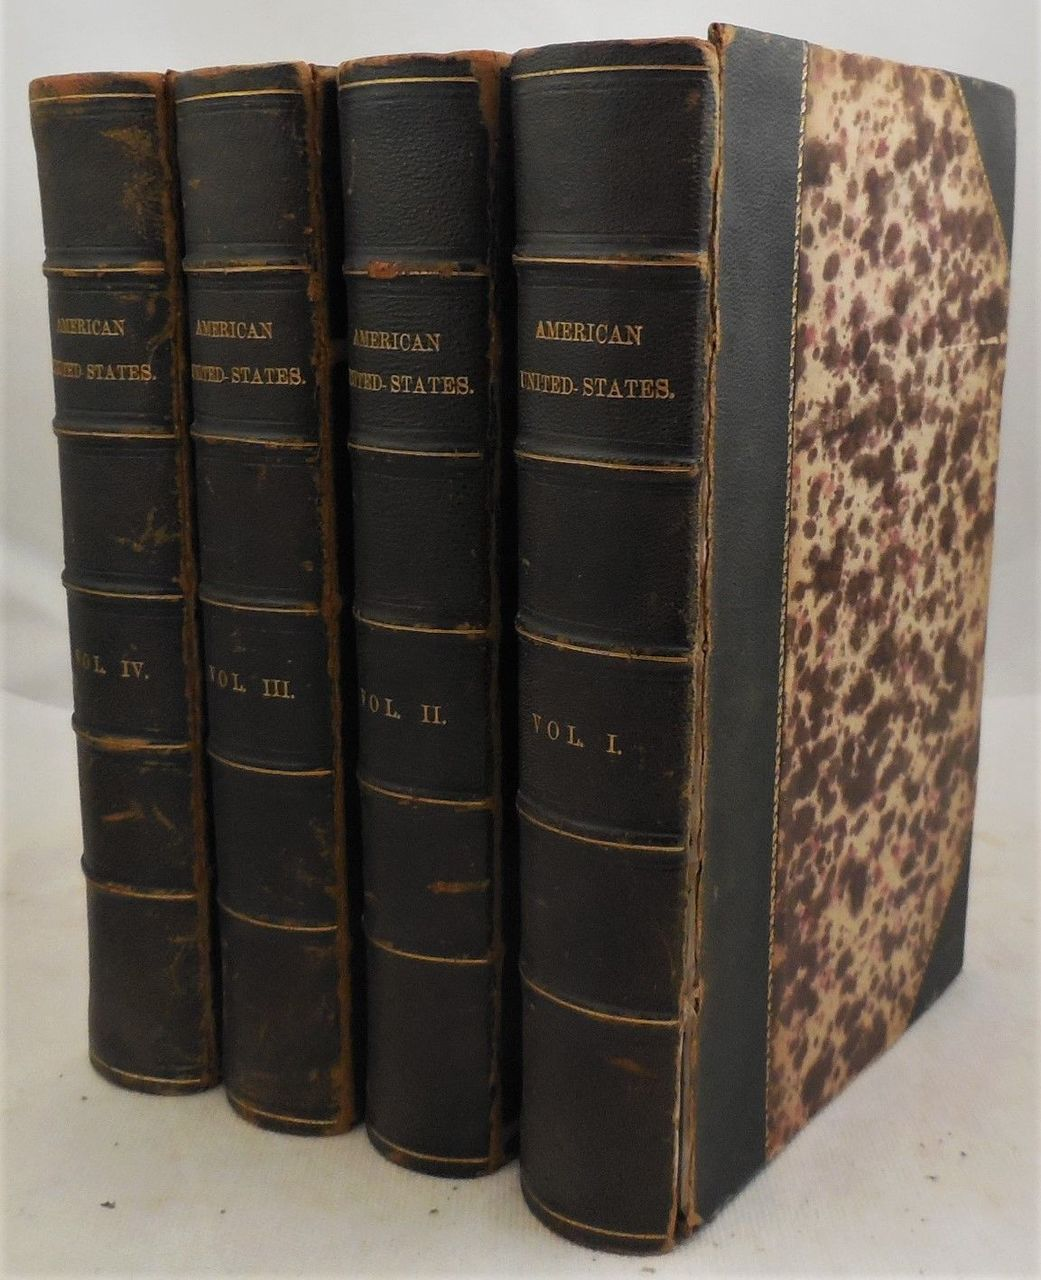 AN HISTORICAL, GEOGRAPHICAL, COMMERCIAL AND PHILOSOPHICAL VIEW OF THE AMERICAN UNITED STATES... in 4 Vols, by William Winterbotham - 1795